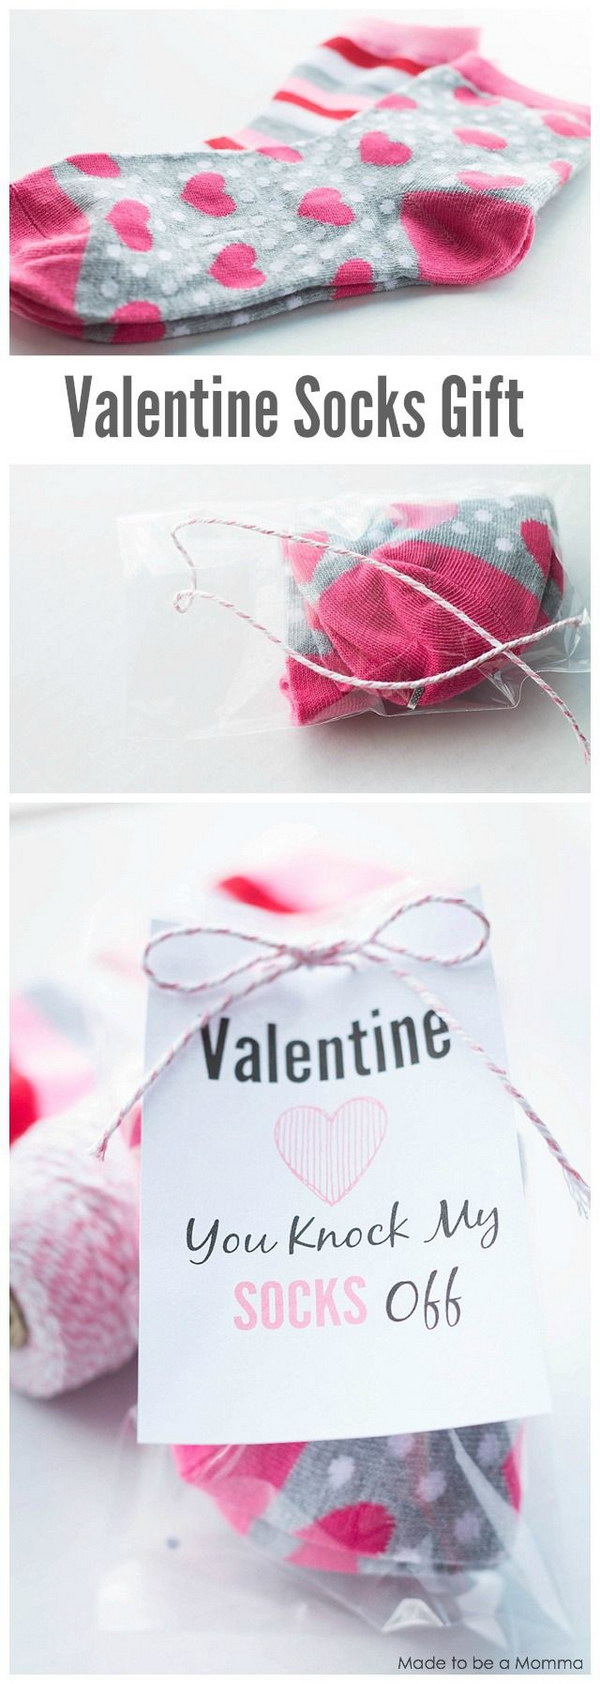 Valentine Socks Gift Idea with Free Printable